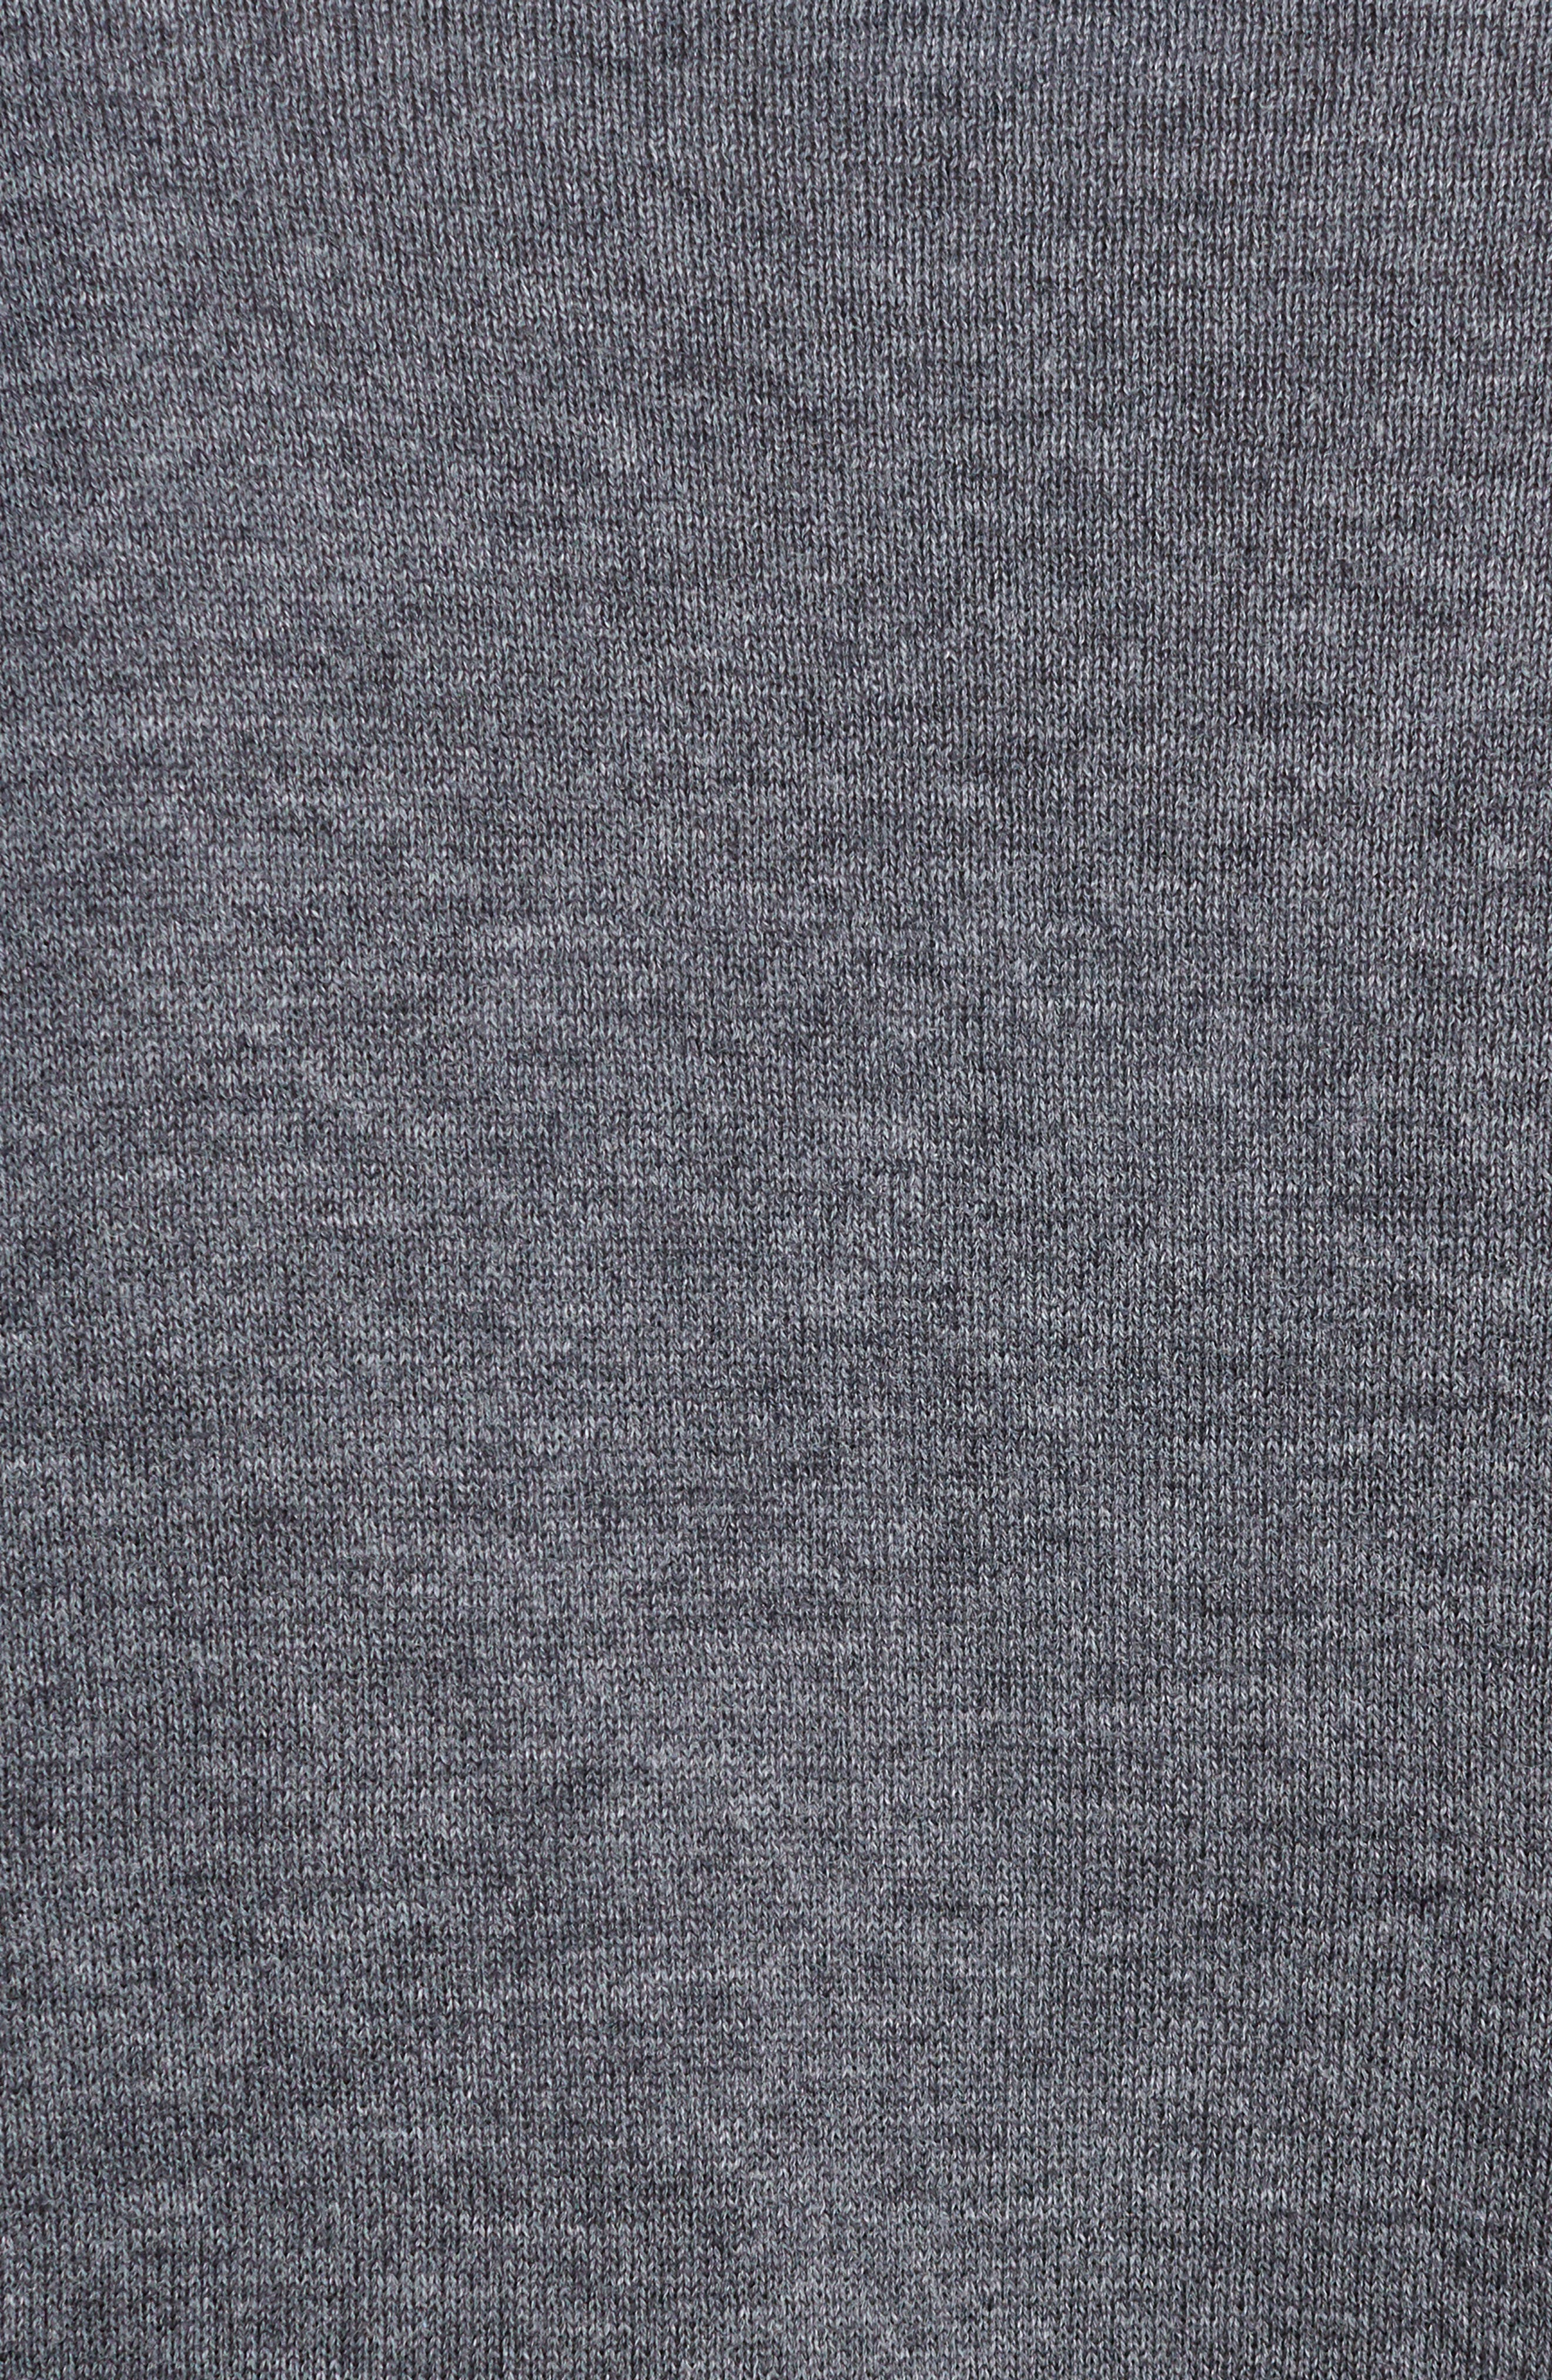 Check Tier Sleeve Sweater,                             Alternate thumbnail 5, color,                             Gray